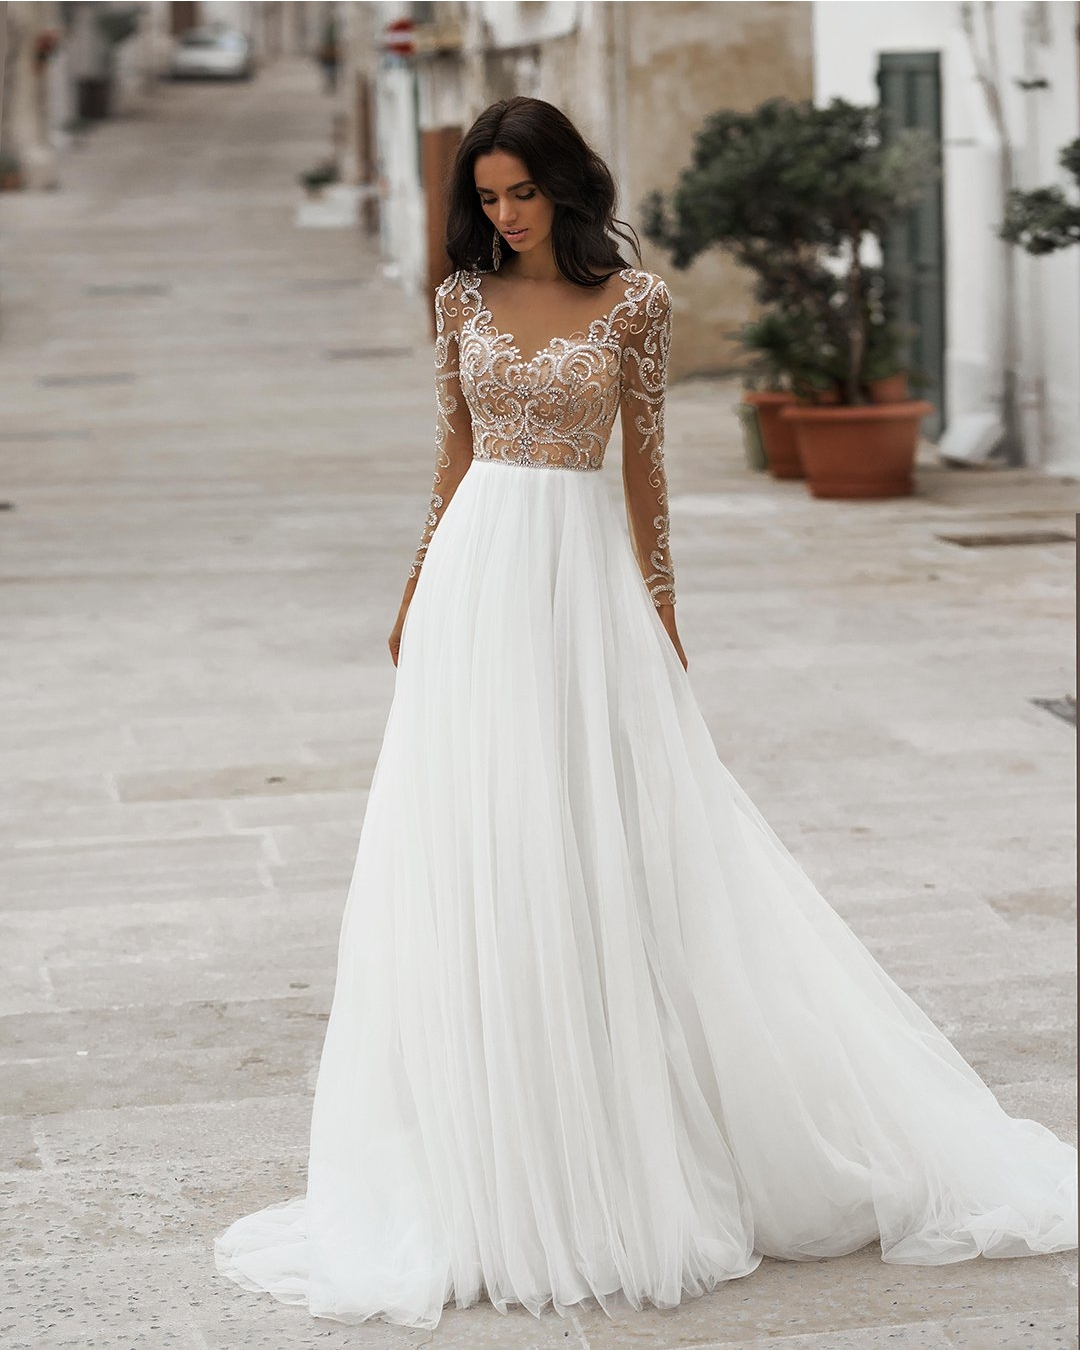 Vivian's Bridal 2019 Hot 3d Lace Crystal Beading Weding Dress Sexy Illusion Mesh Long Sleeve Button Soft Tulle Bridal Dress